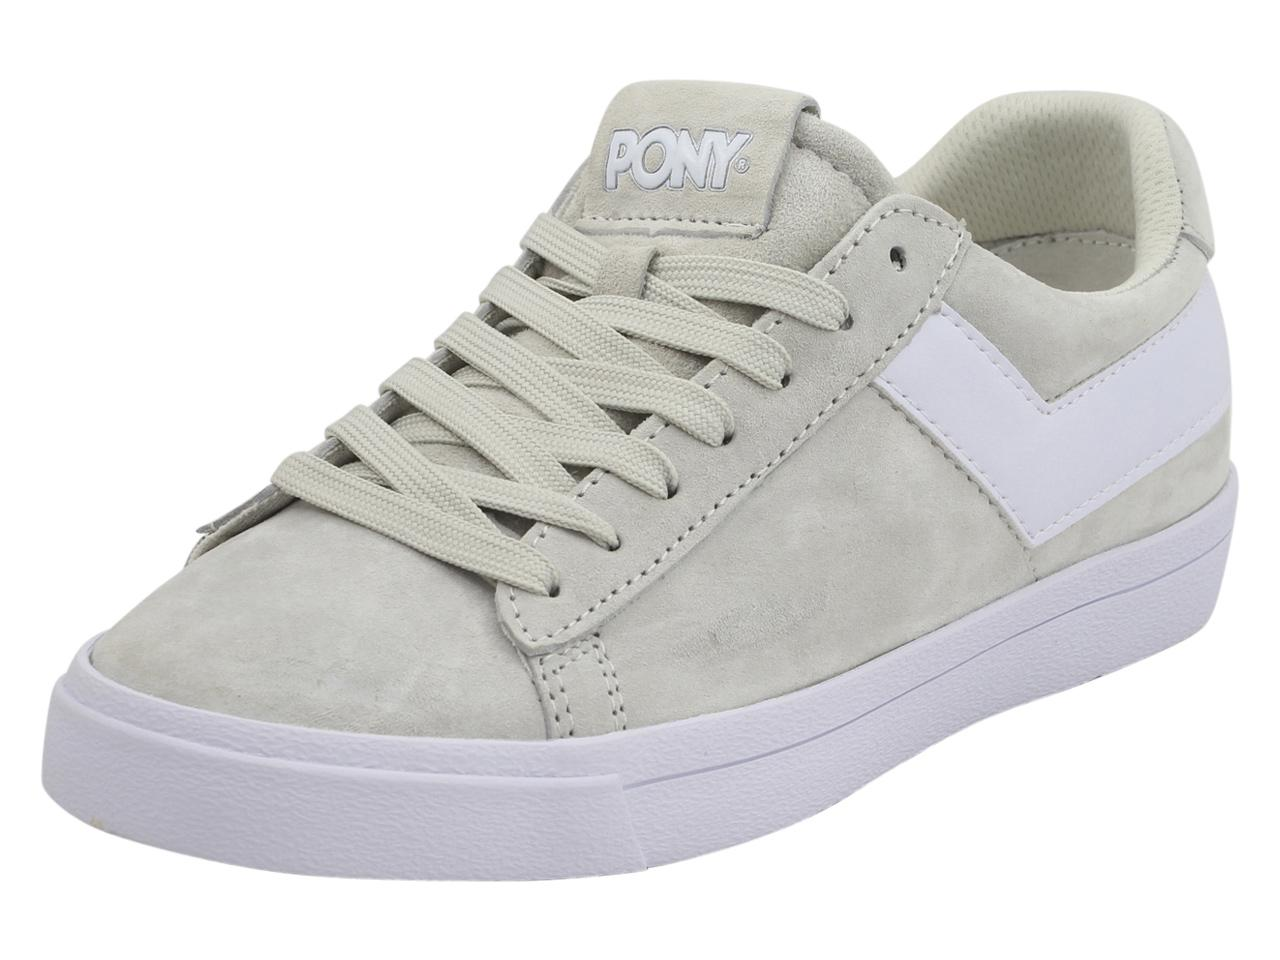 Image of Pony Women's Top Star Lo Core Suede Sneakers Shoes - Beige - 6 B(M) US